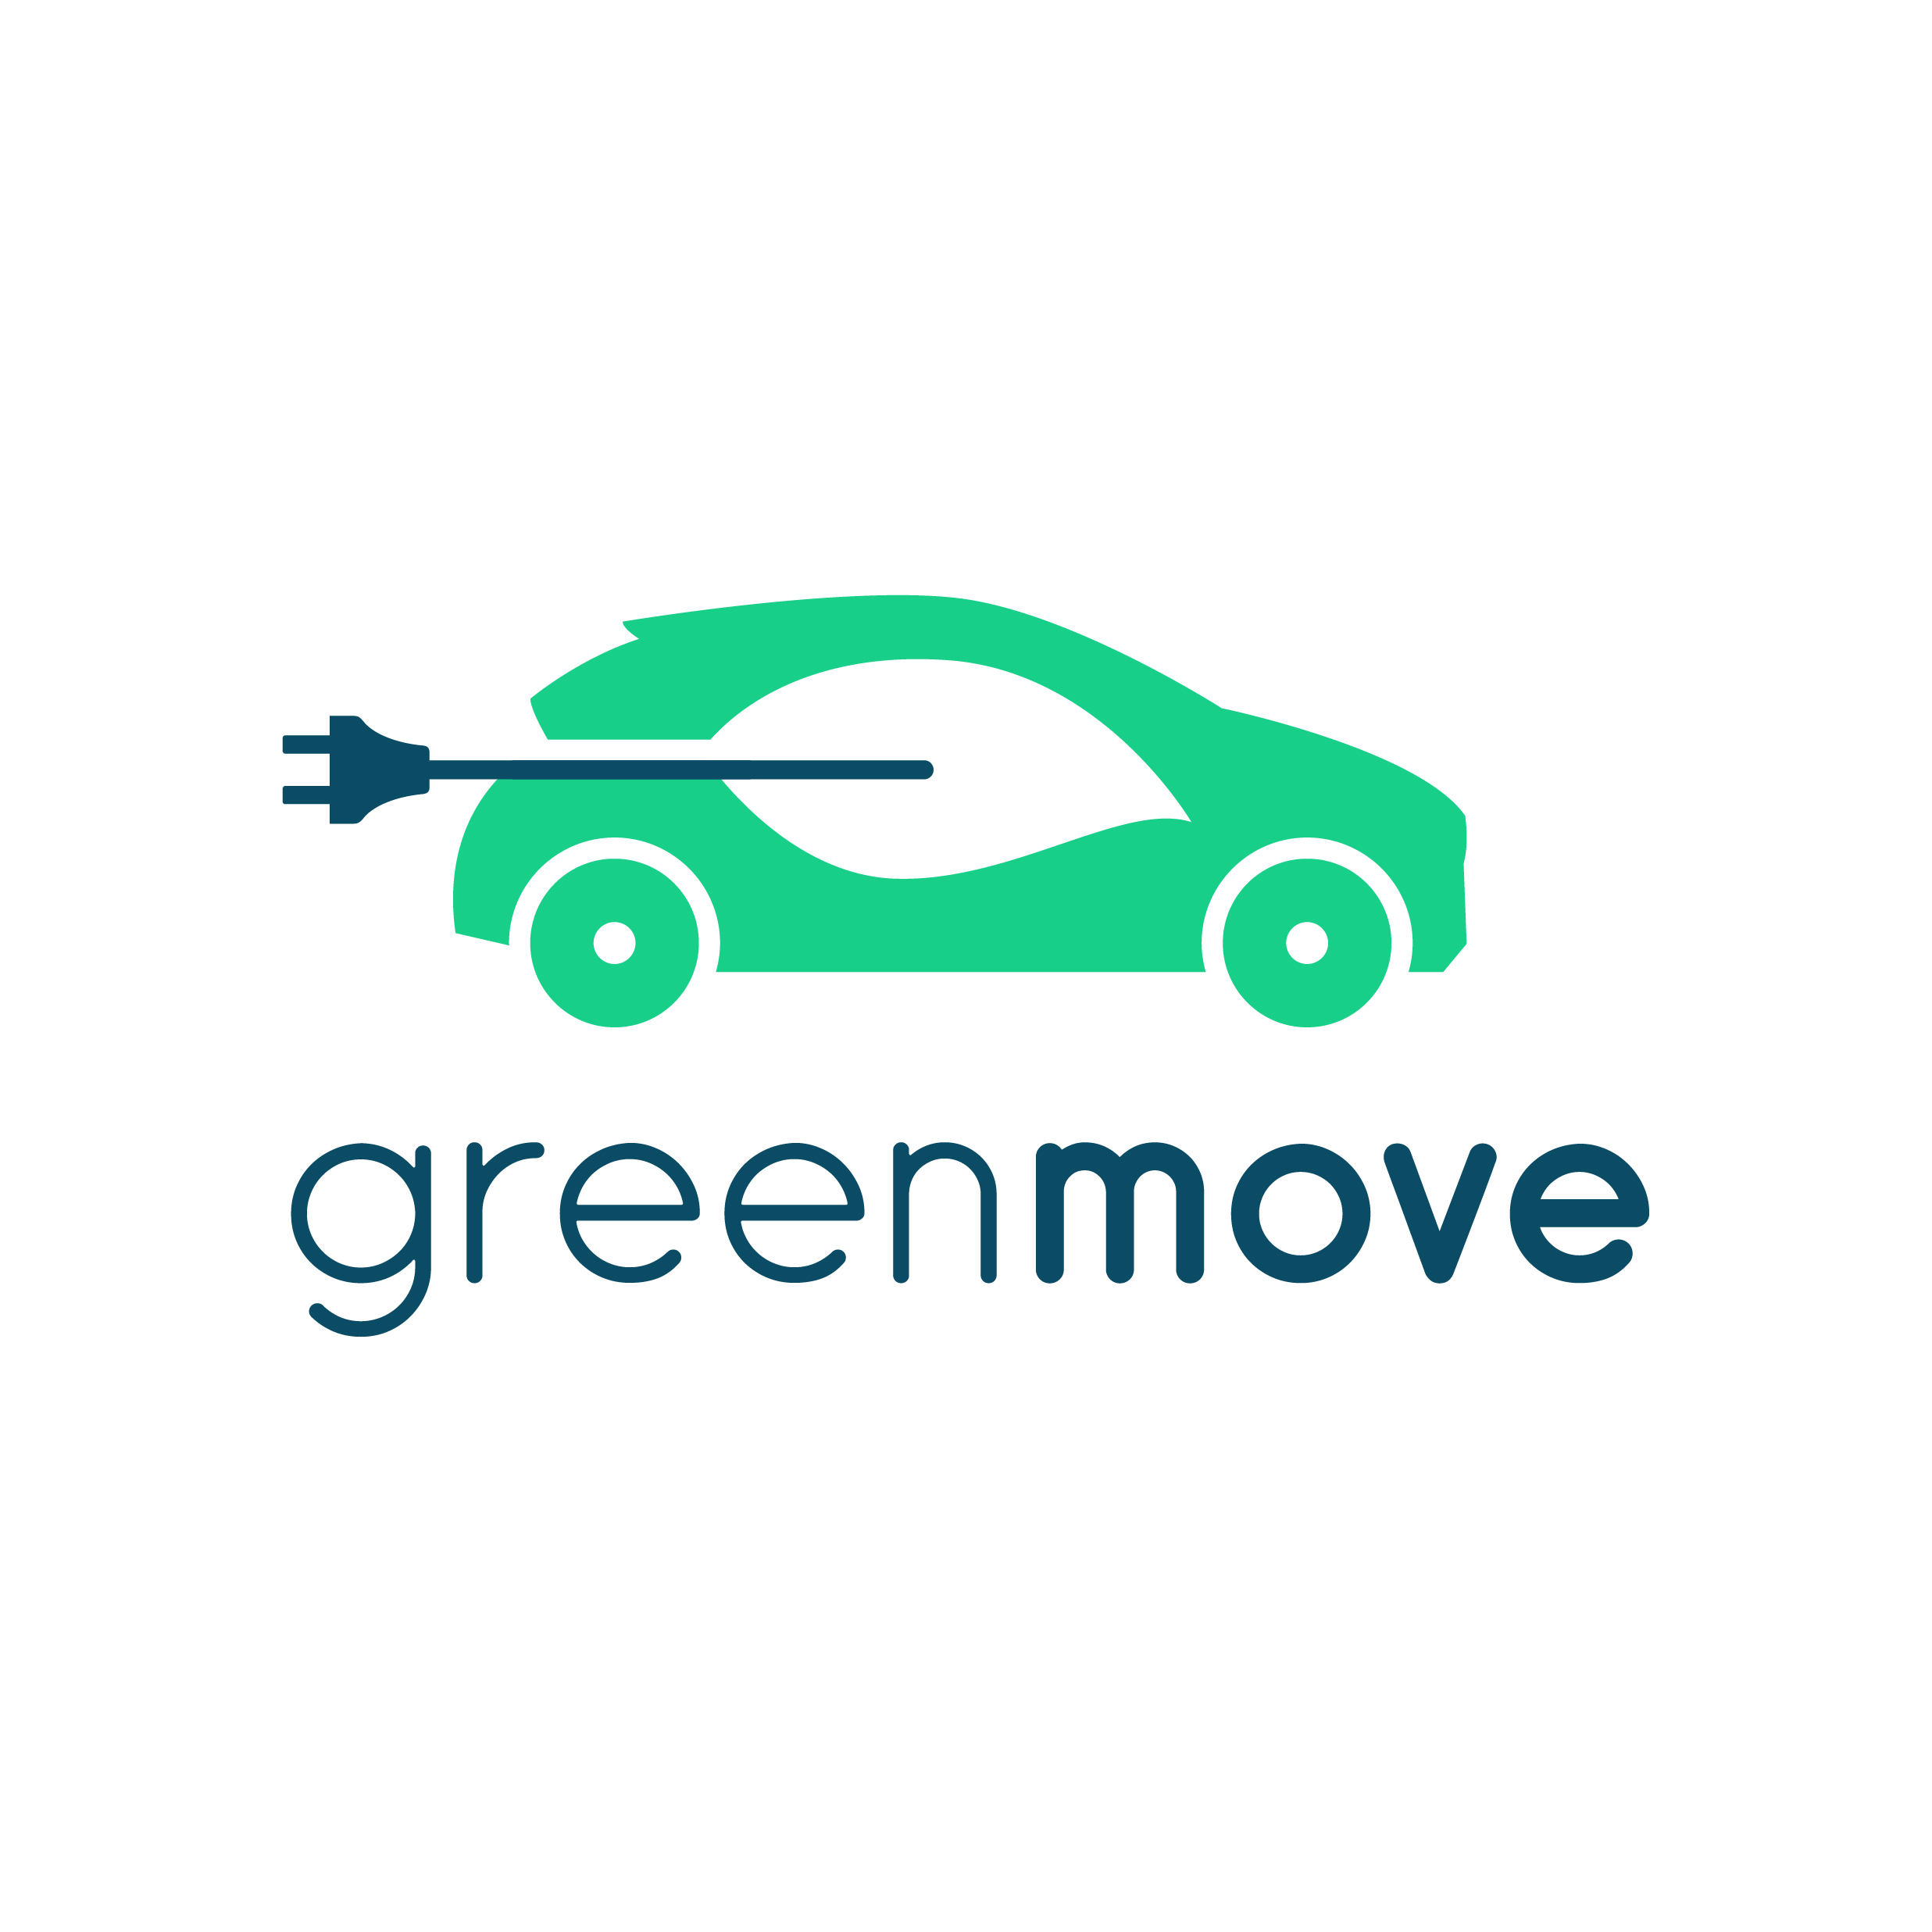 Greenmove